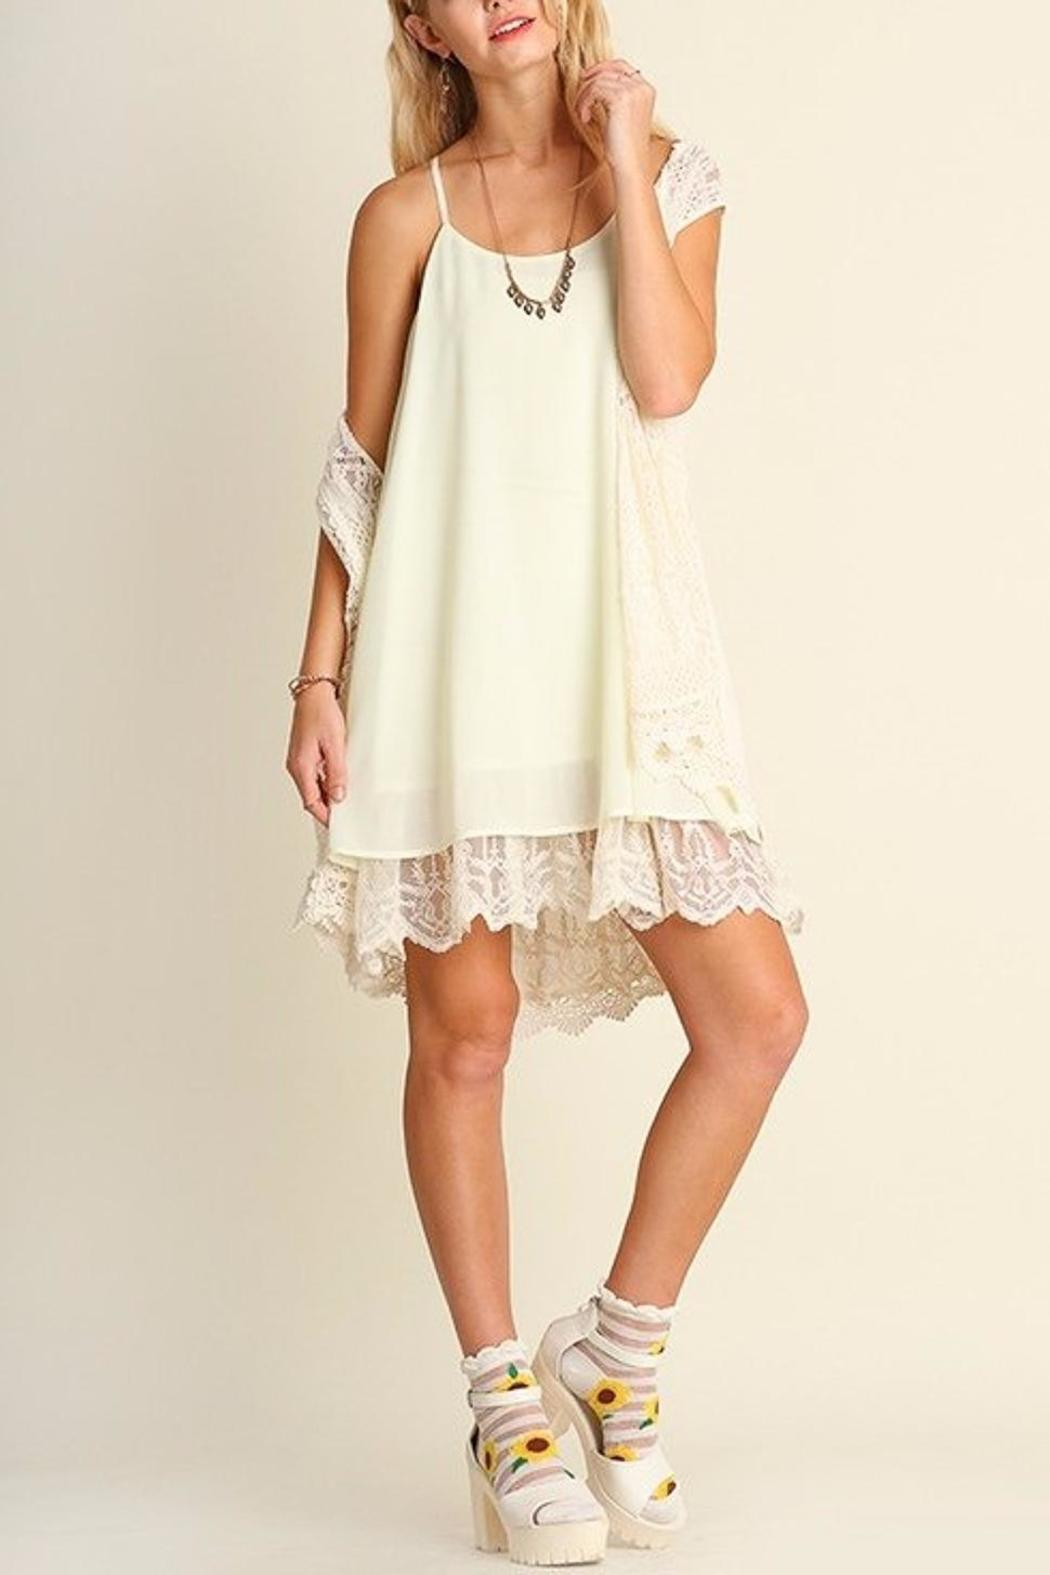 People Outfitter Ella Lace Dress - Main Image